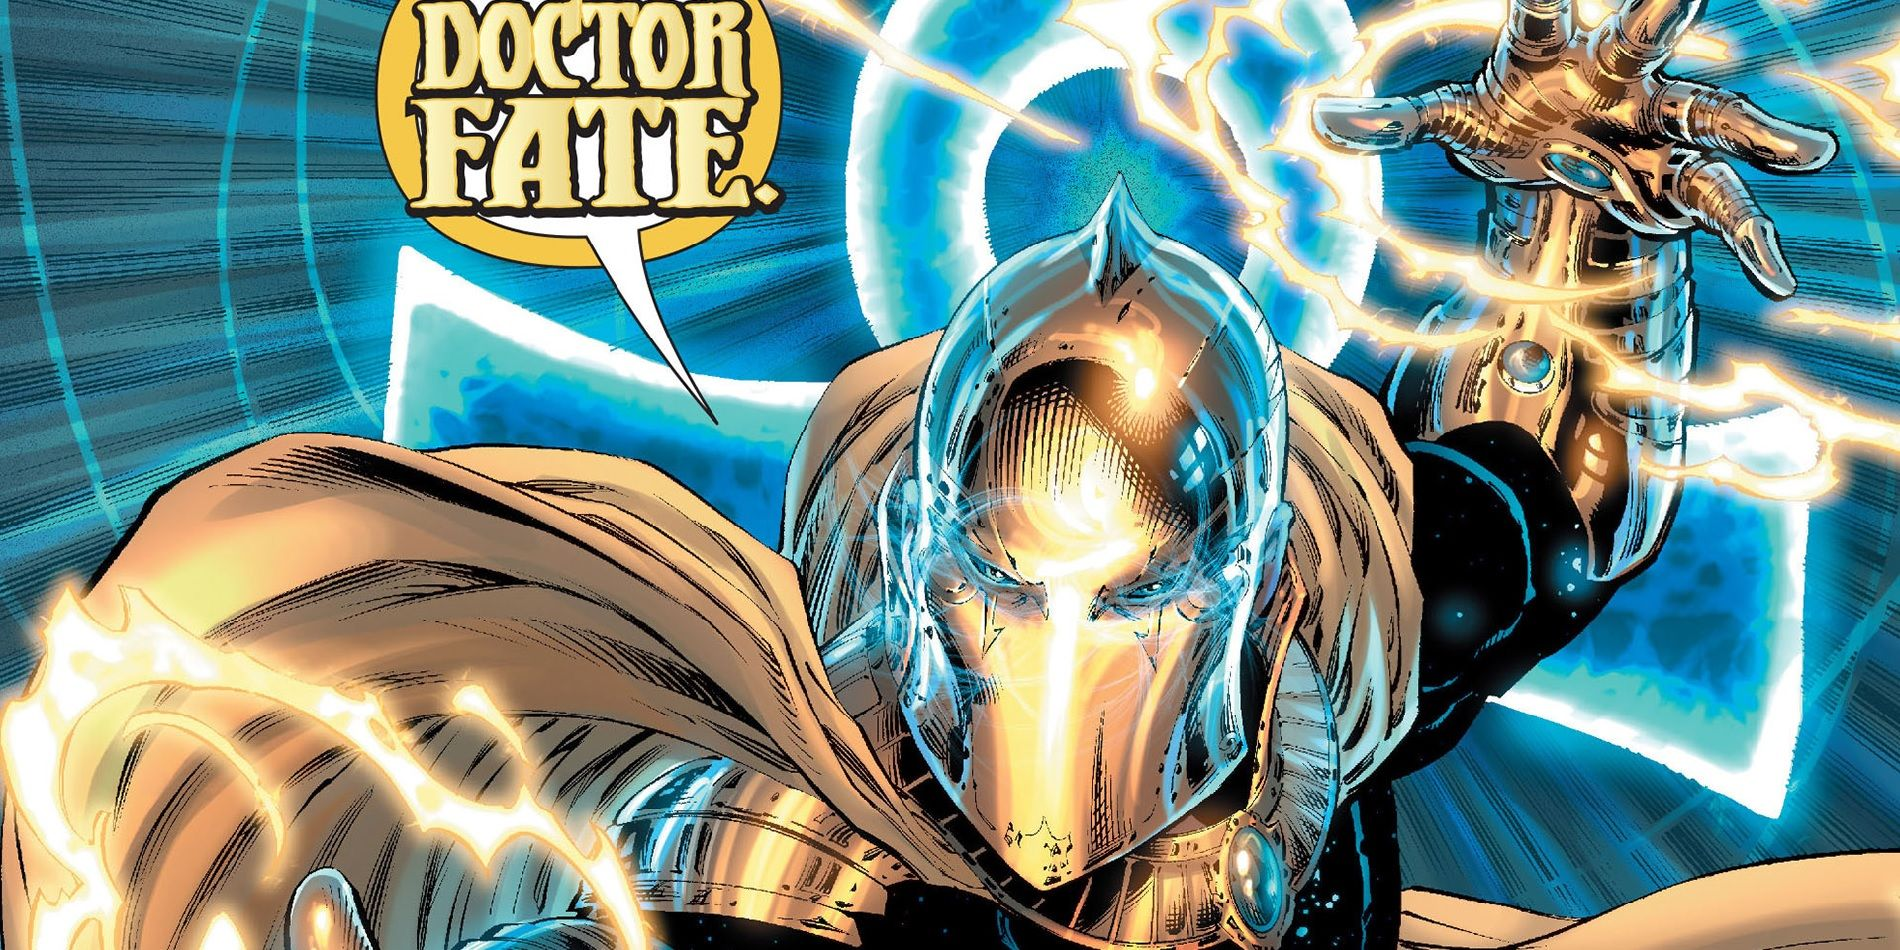 1 Doctor Fate